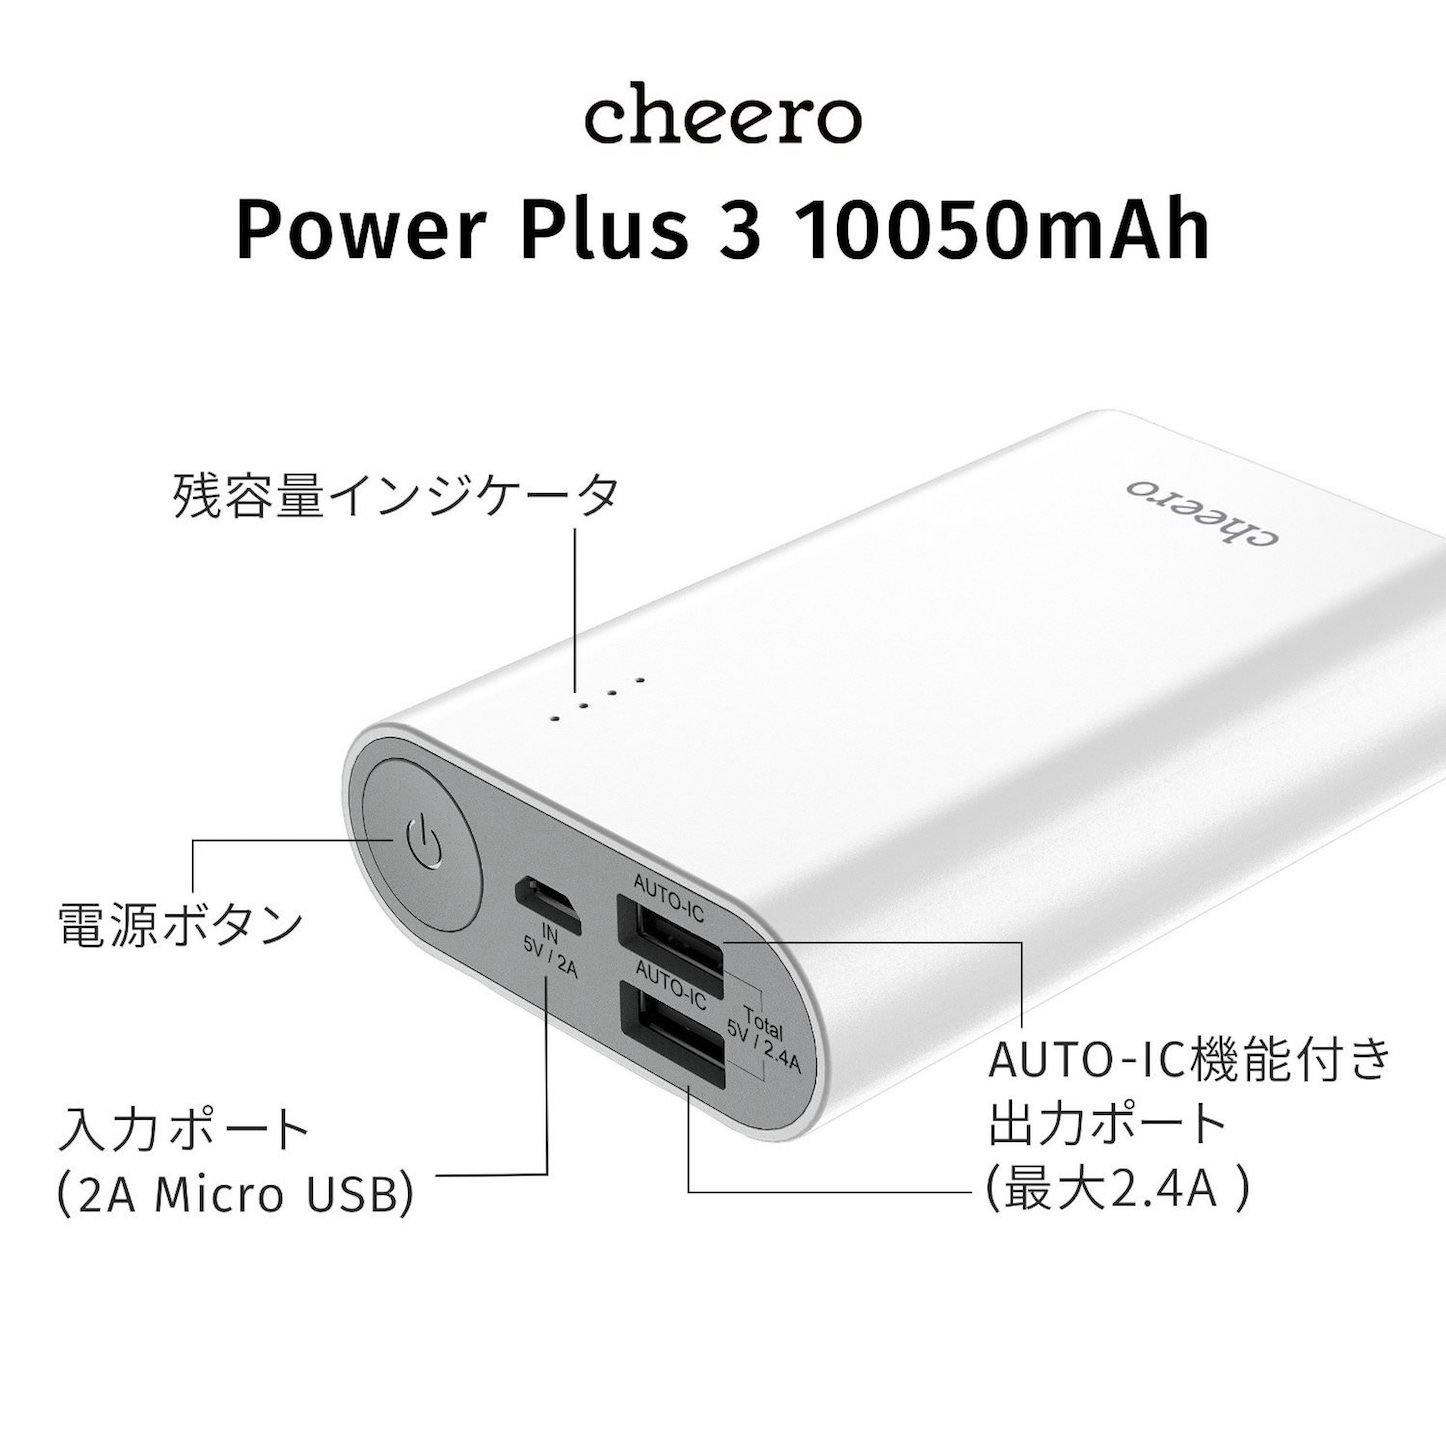 Cheero Power Plus 3 10500mAh